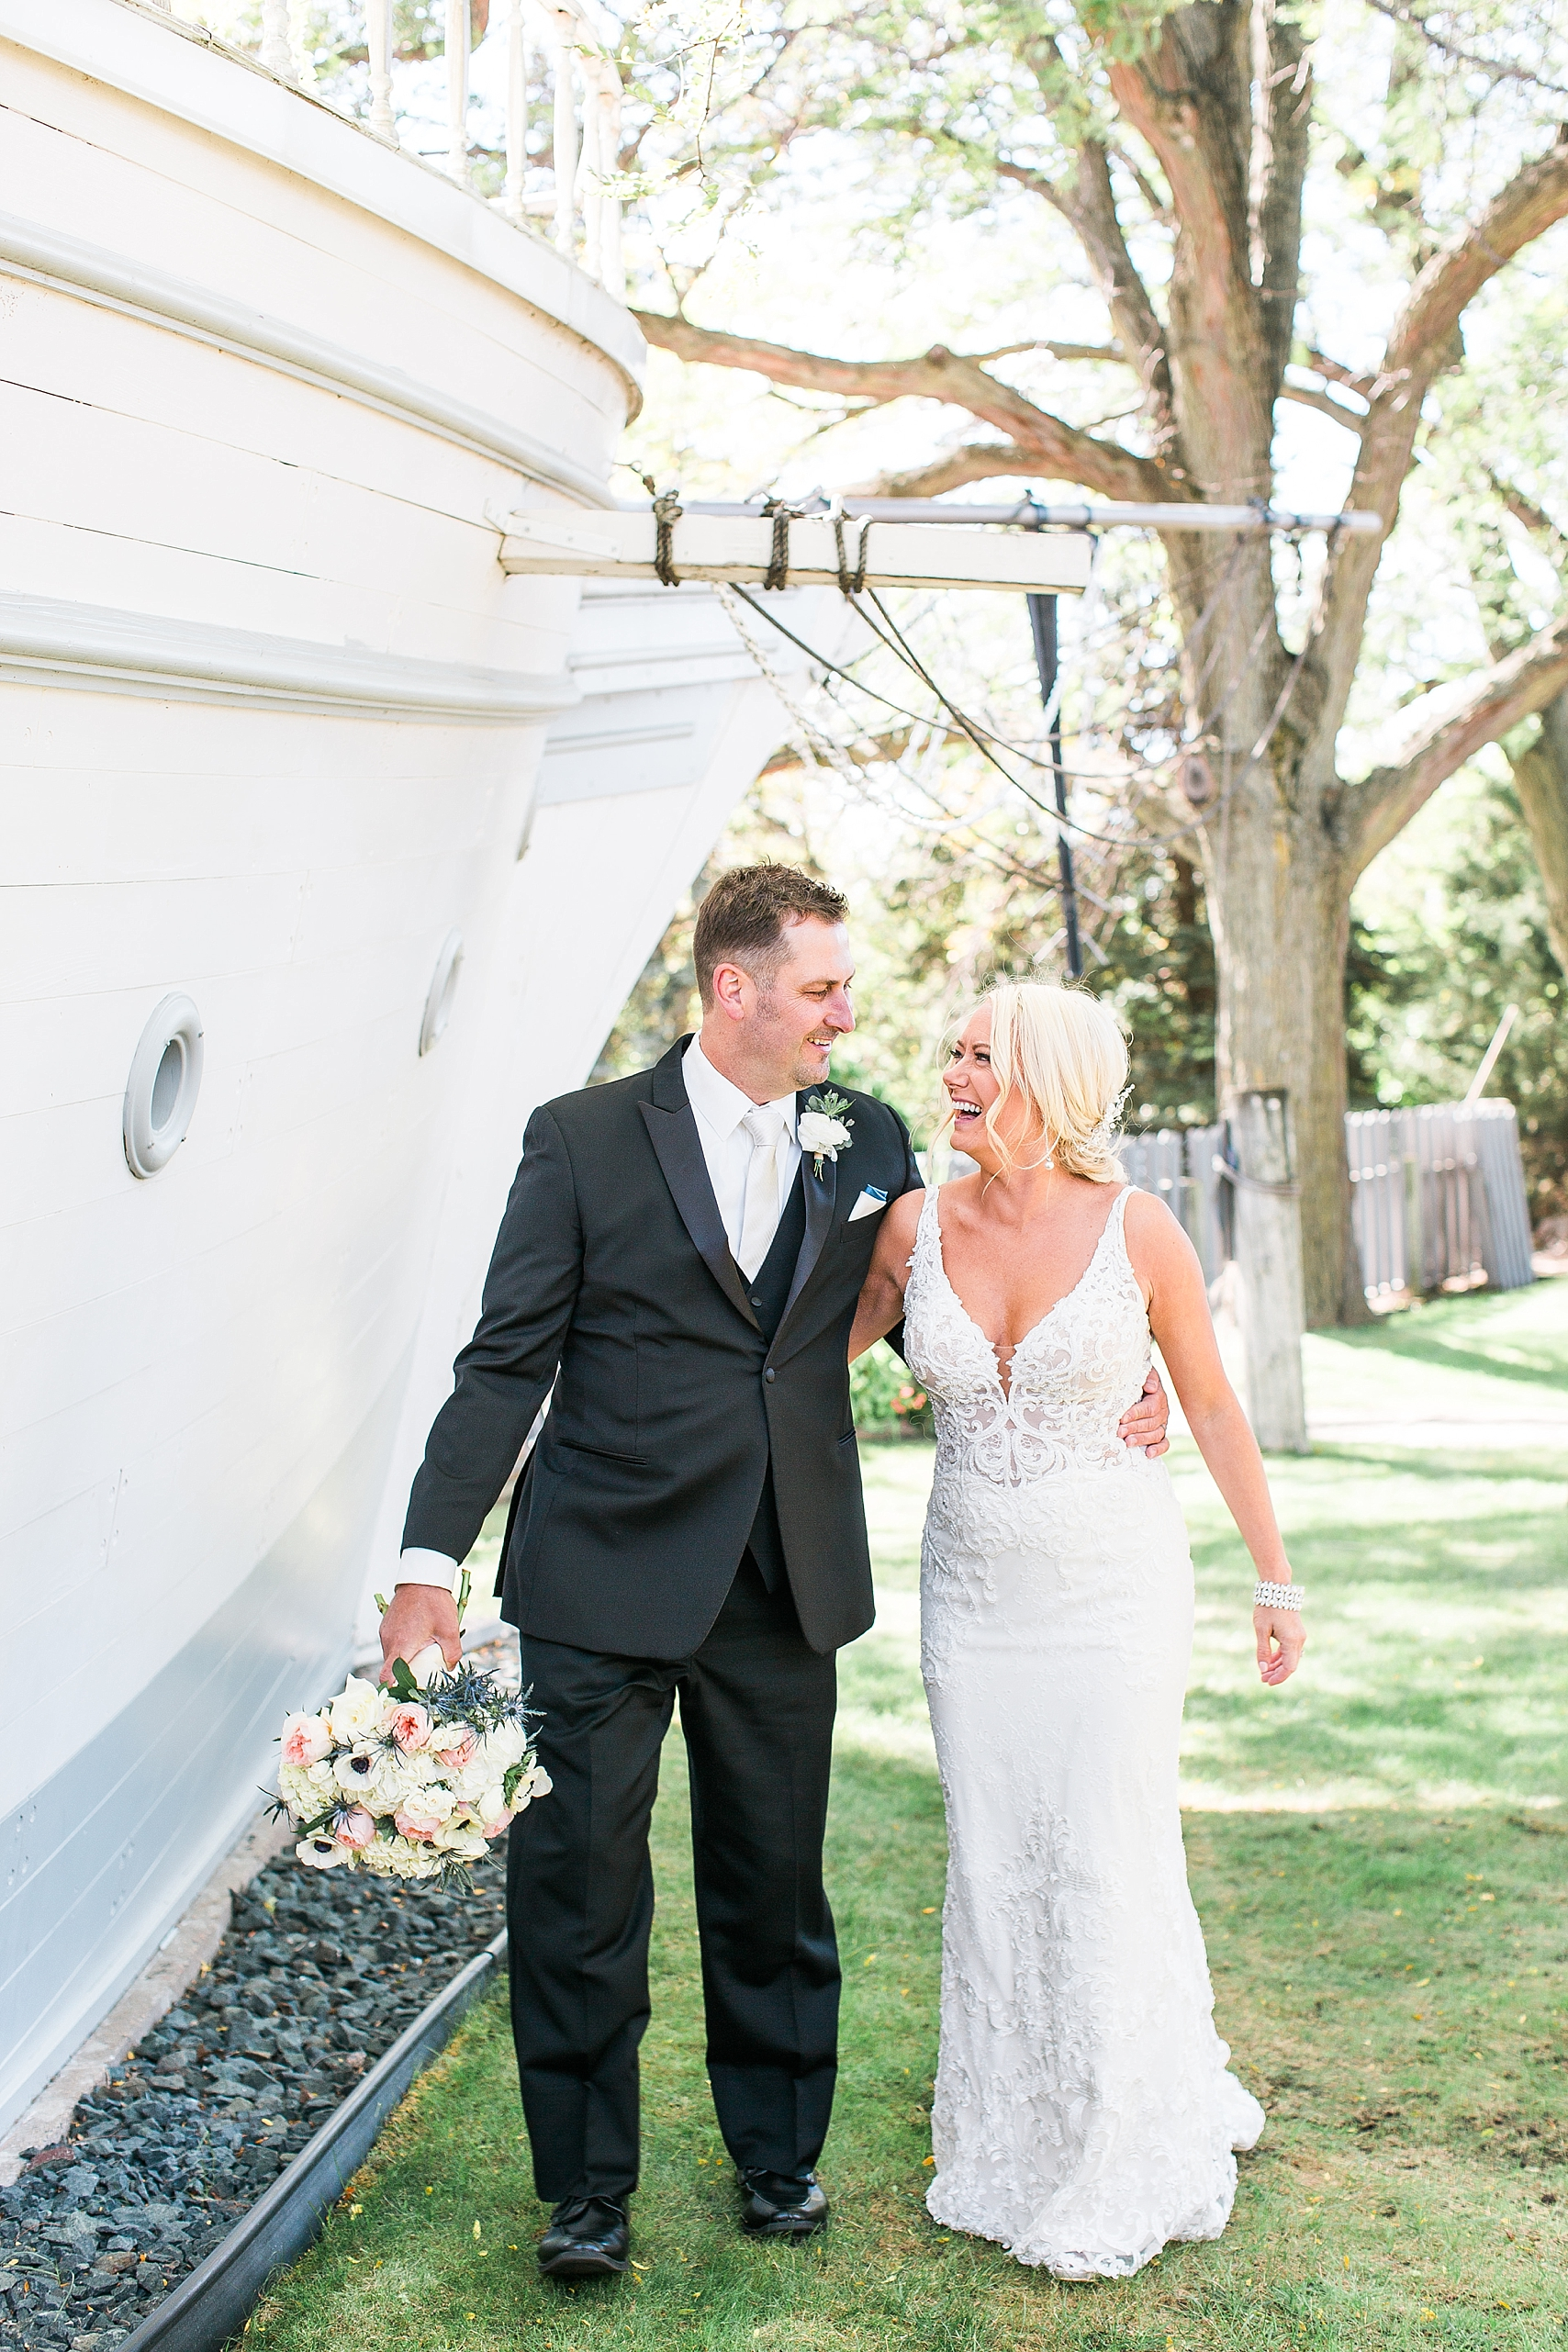 Bride and groom walking next to ship on wedding day at the Chart House Summer Wedding Lakeville Minnesota Minneapolis Wedding Photographer Mallory Kiesow